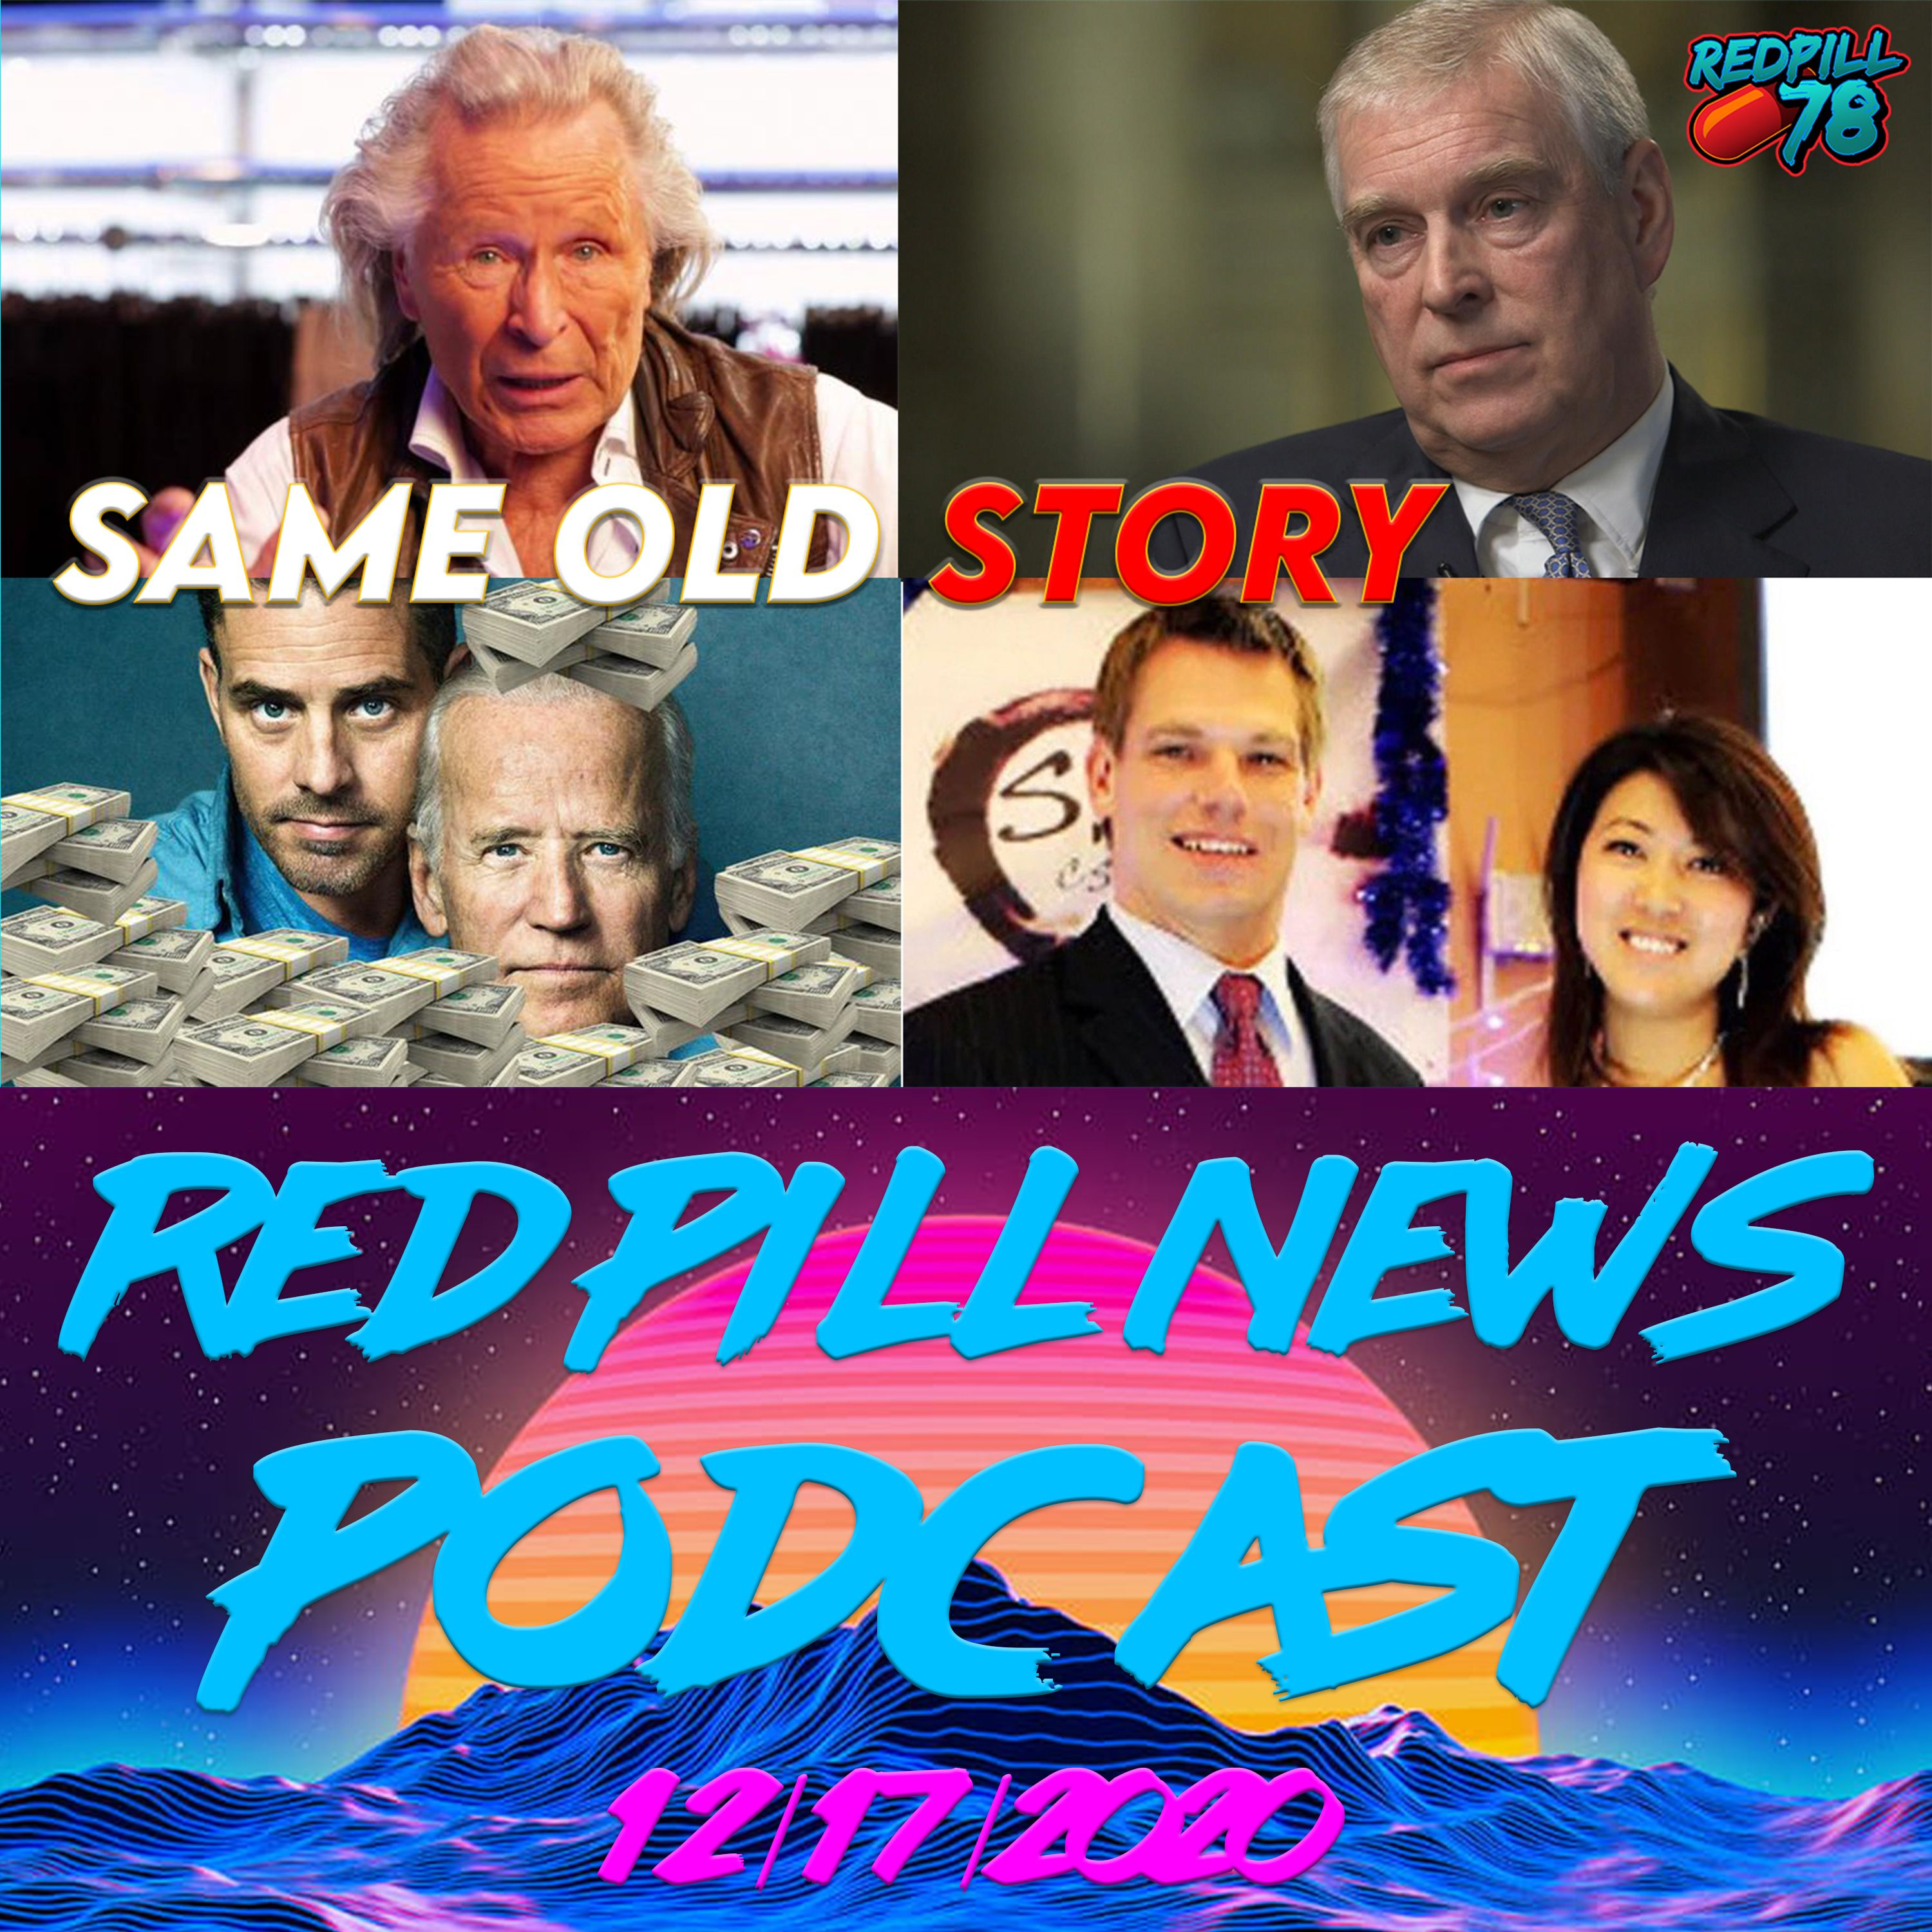 Canadian Epstein Peter Nygard & Prince Andrew Connection, Biden Selling Influence & Swalwell Compromised